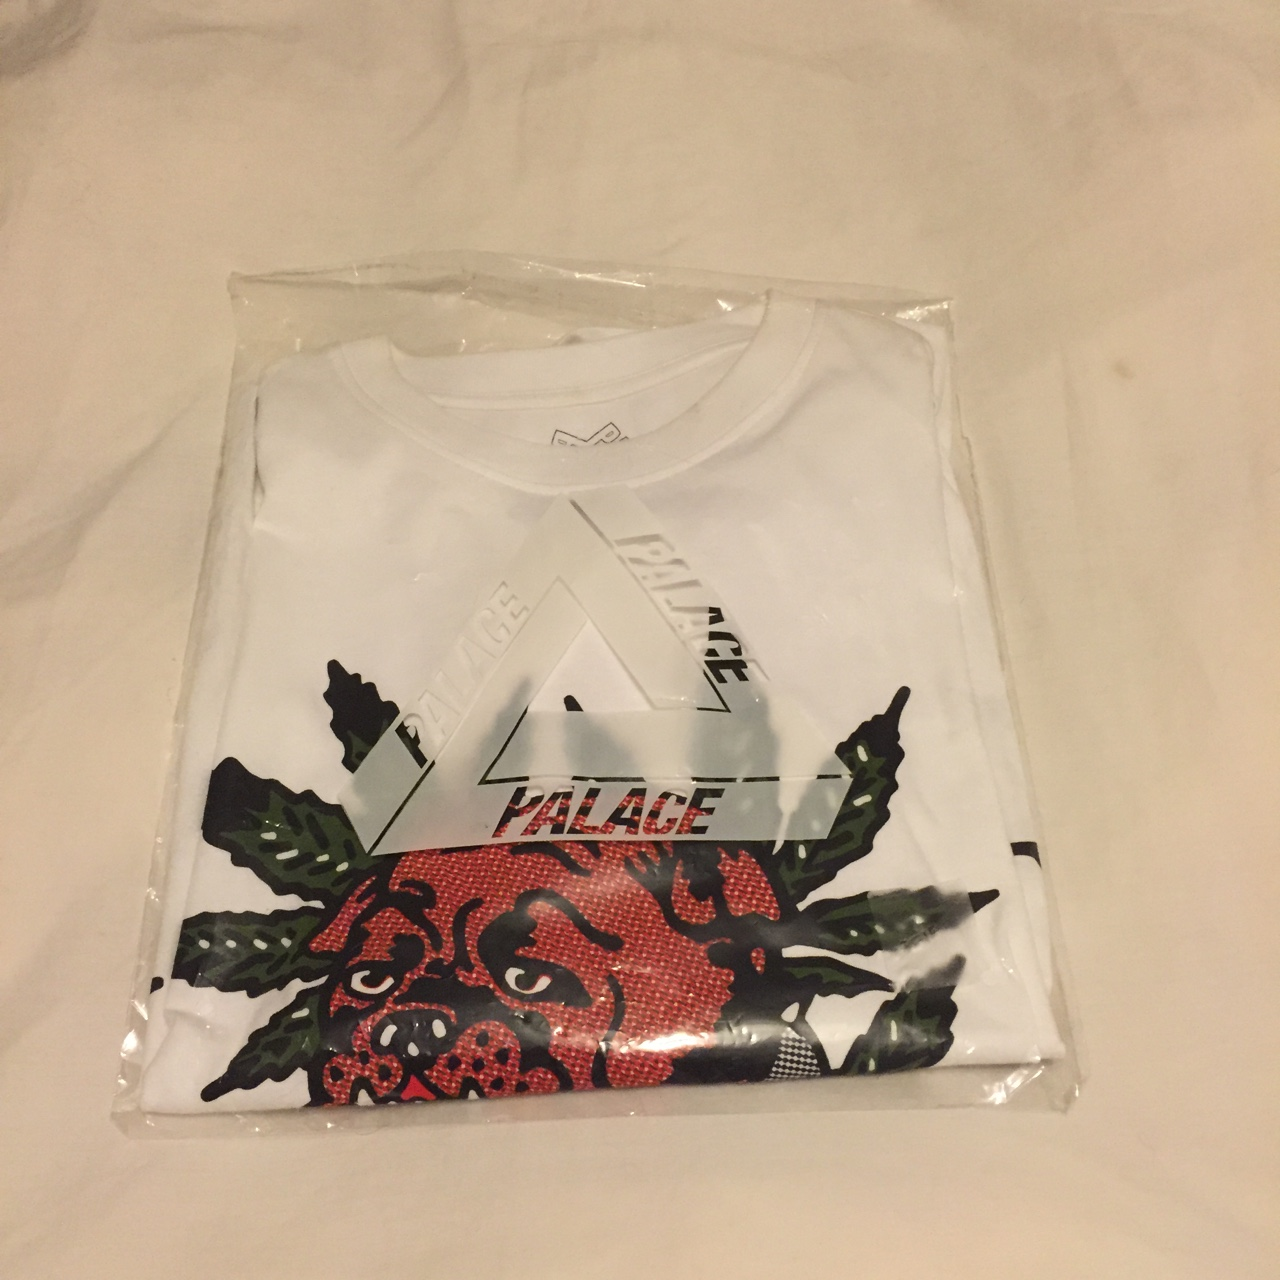 Palace bulldog t shirt bought in London store with Depop